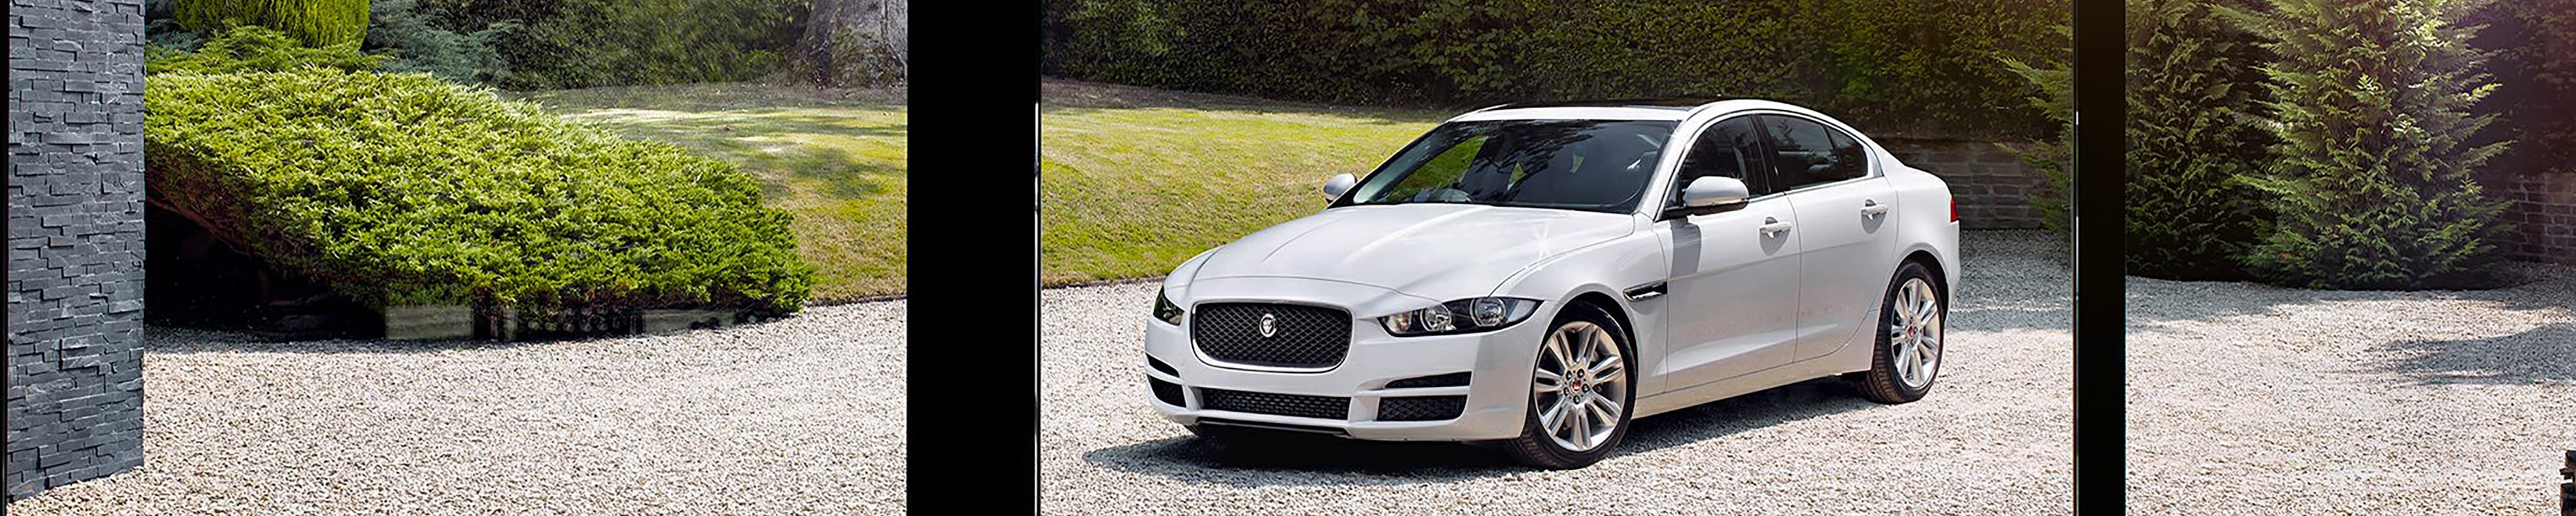 Buy or Lease New Jaguar XE Boston Newton MA Quincy MA and Brookline